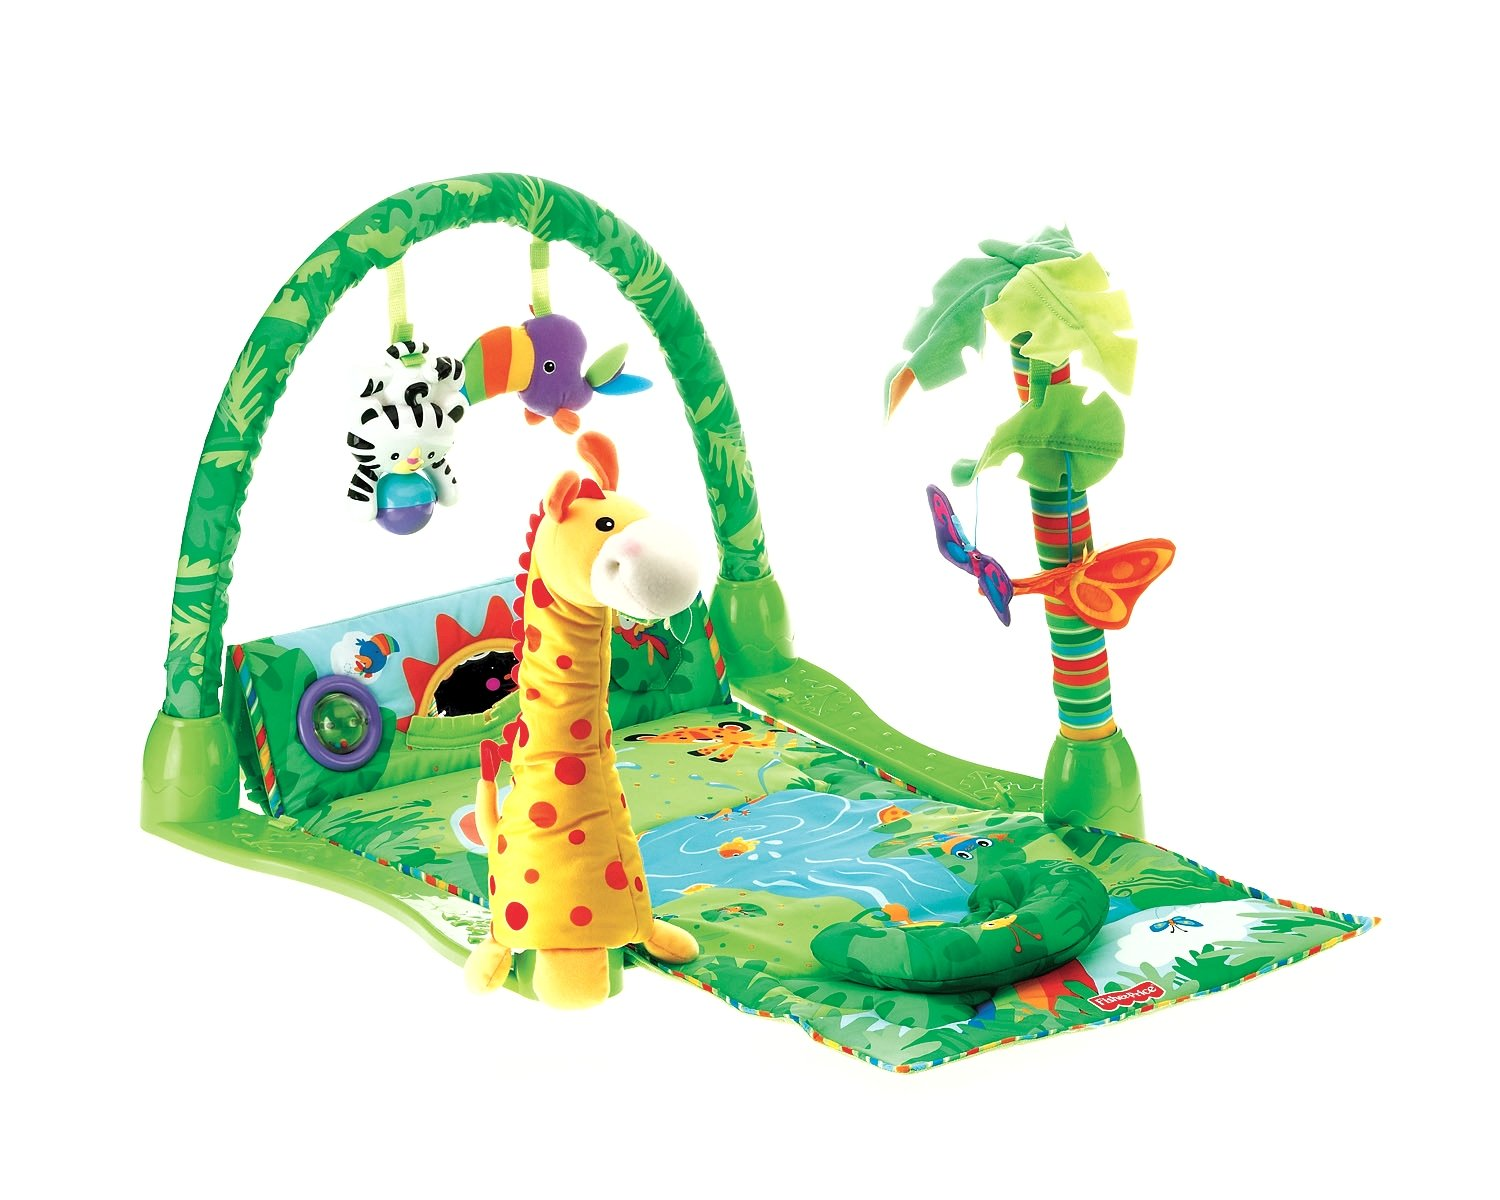 Fisher-Price Rainforest 1-2-3 Musical Gym (Discontinued by Manufacturer) L1664